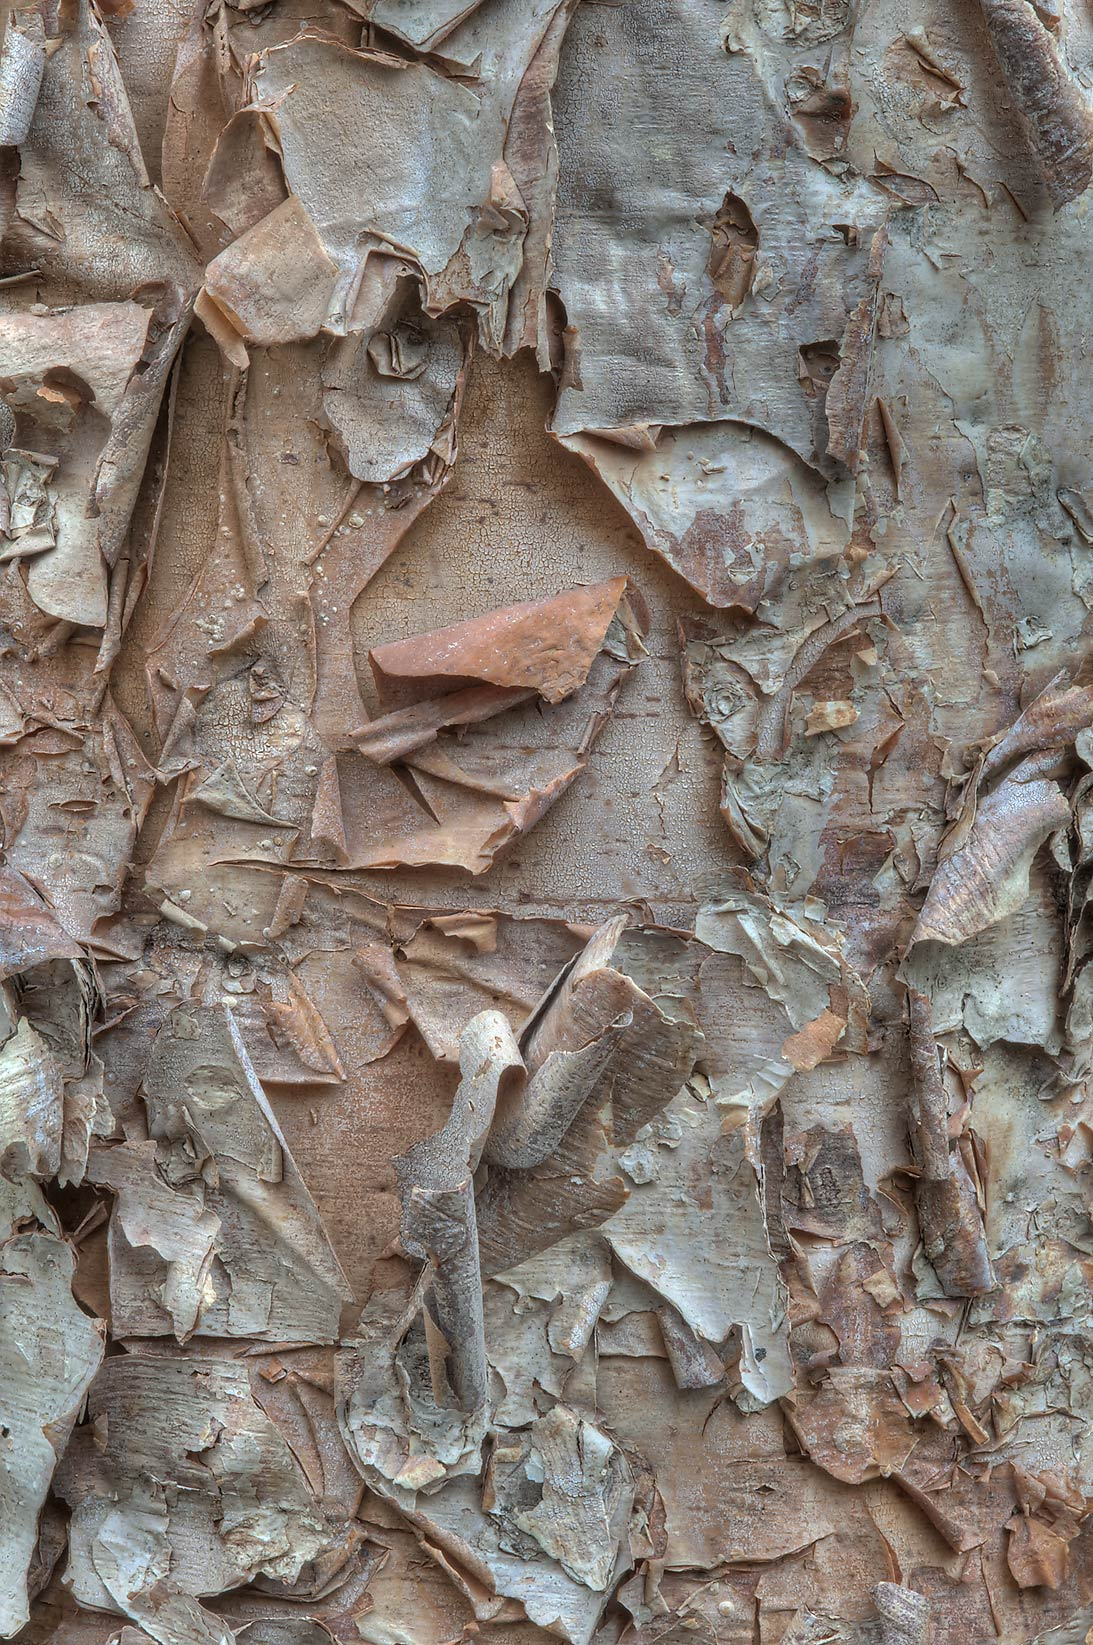 Papery strips of bark of river birch (Betula...Creek Park. College Station, Texas